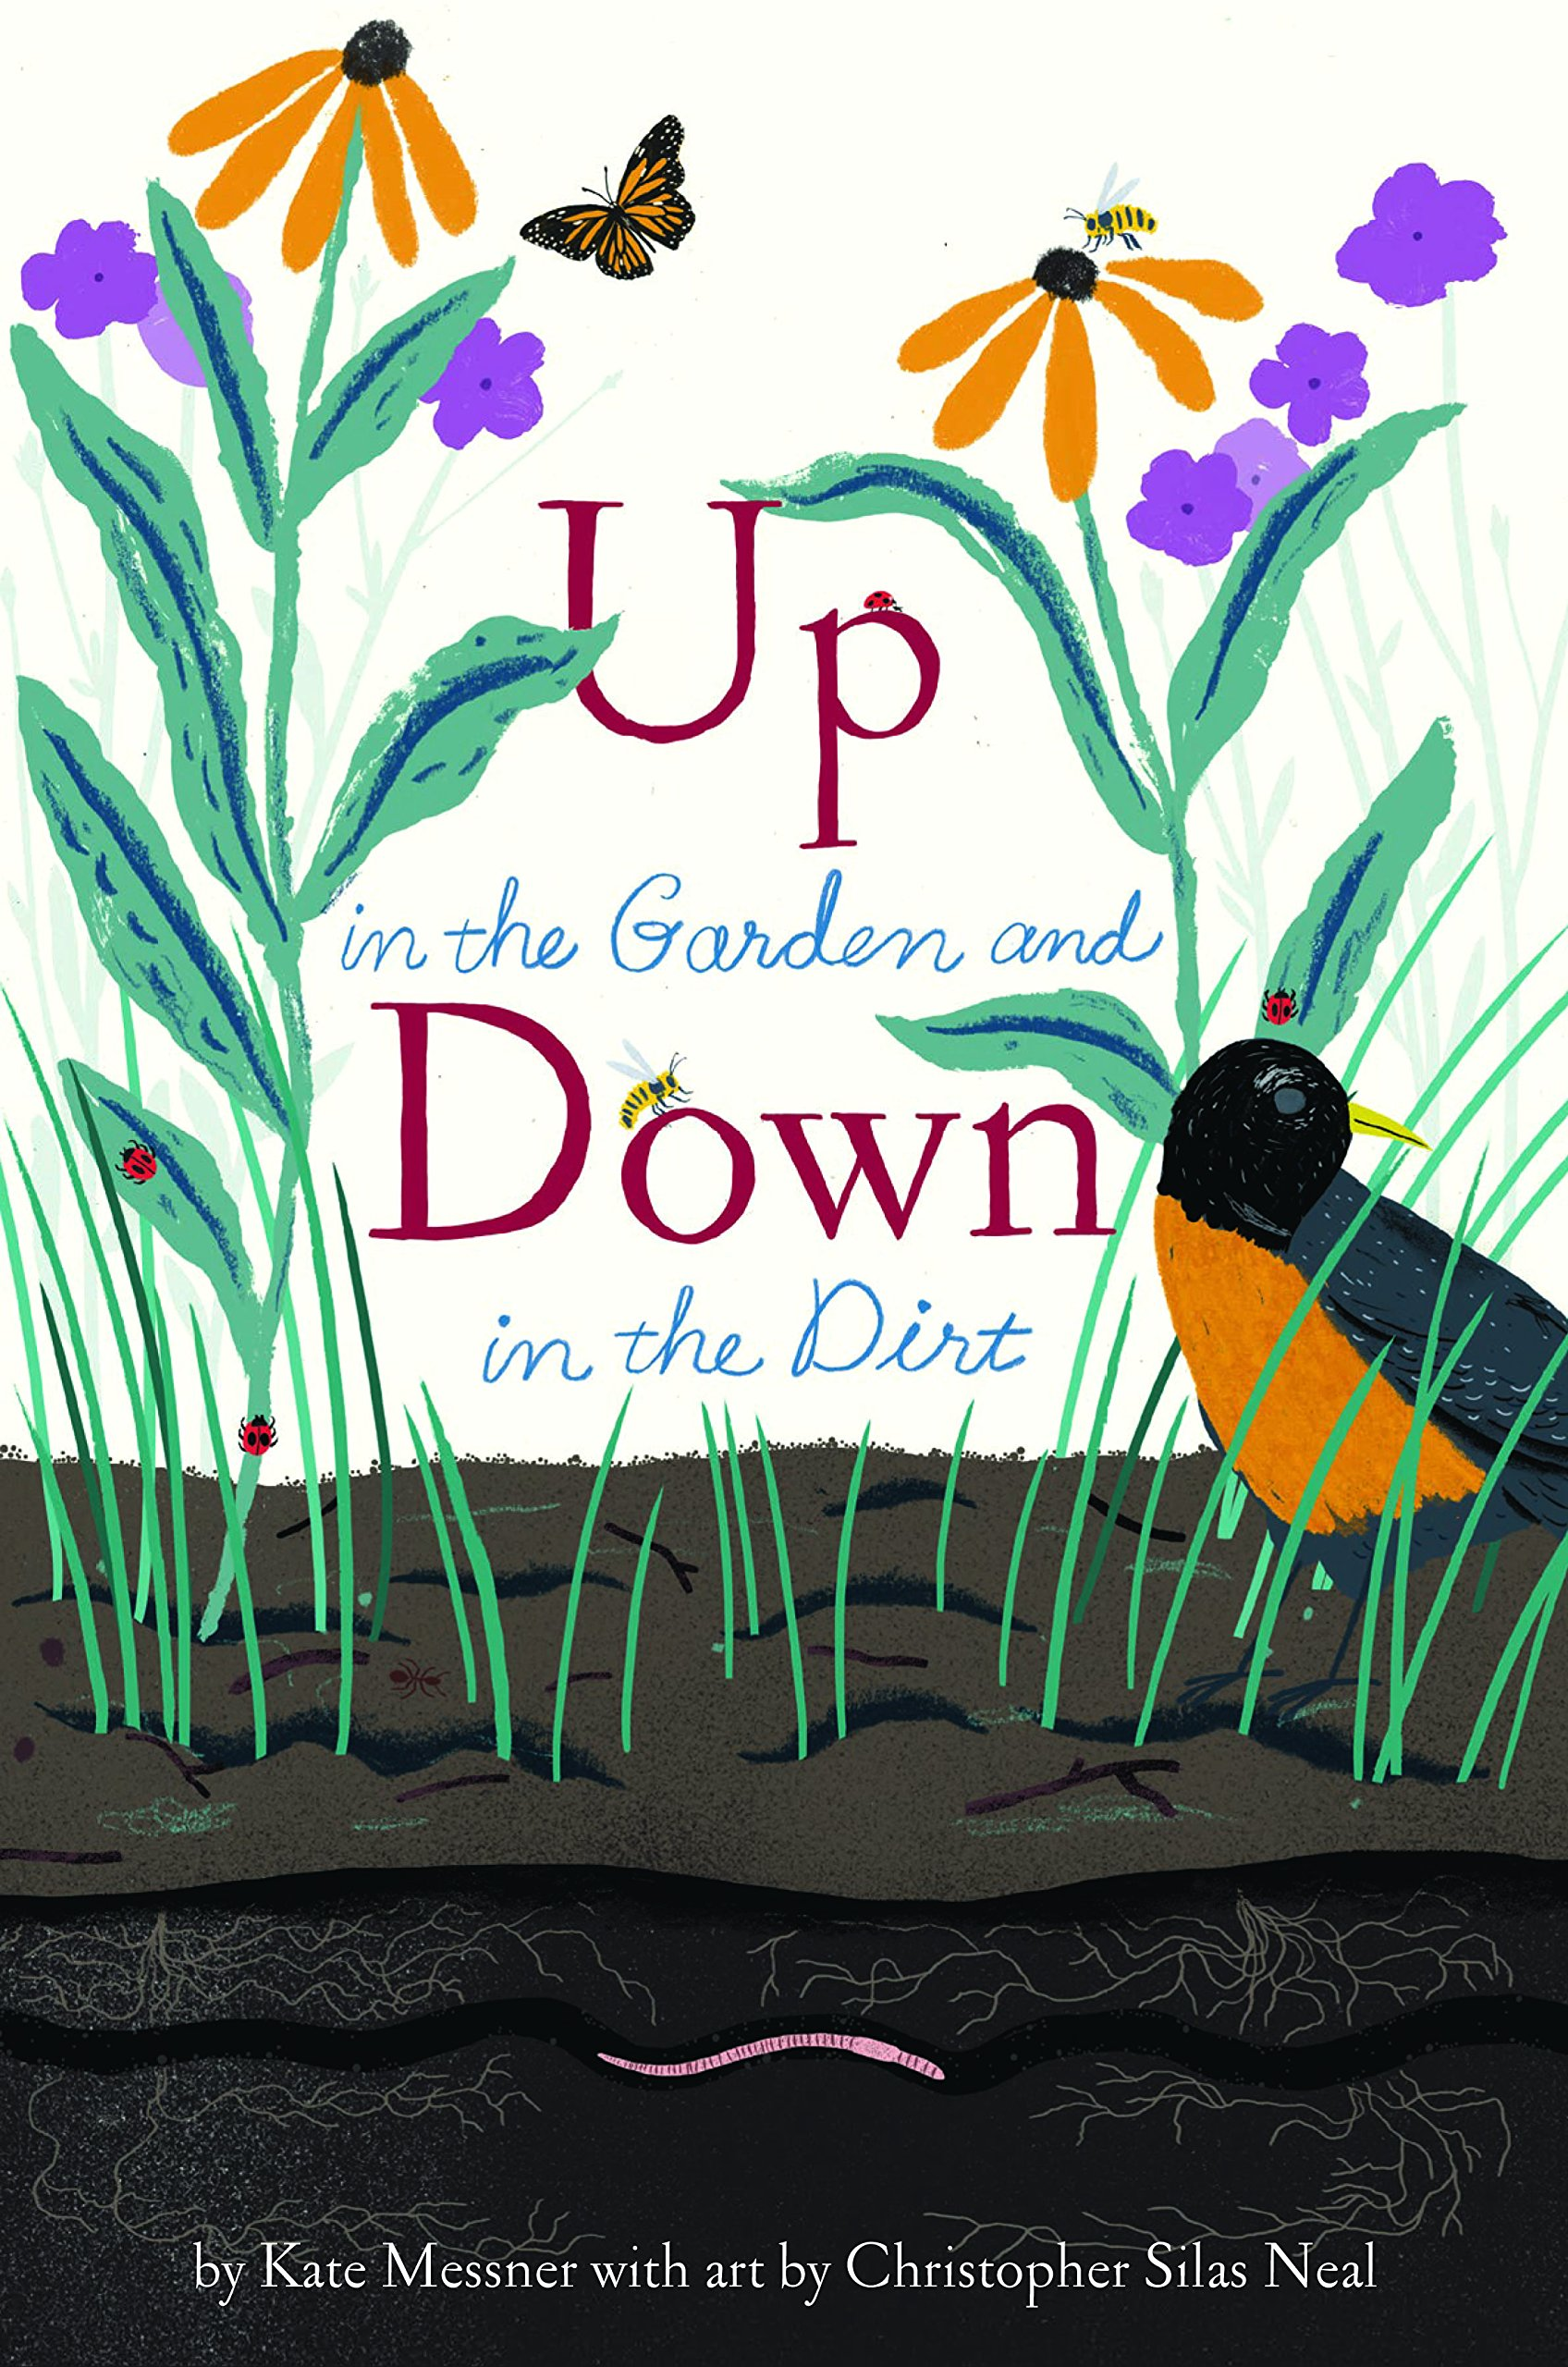 Garden Down Dirt Kate Messner product image